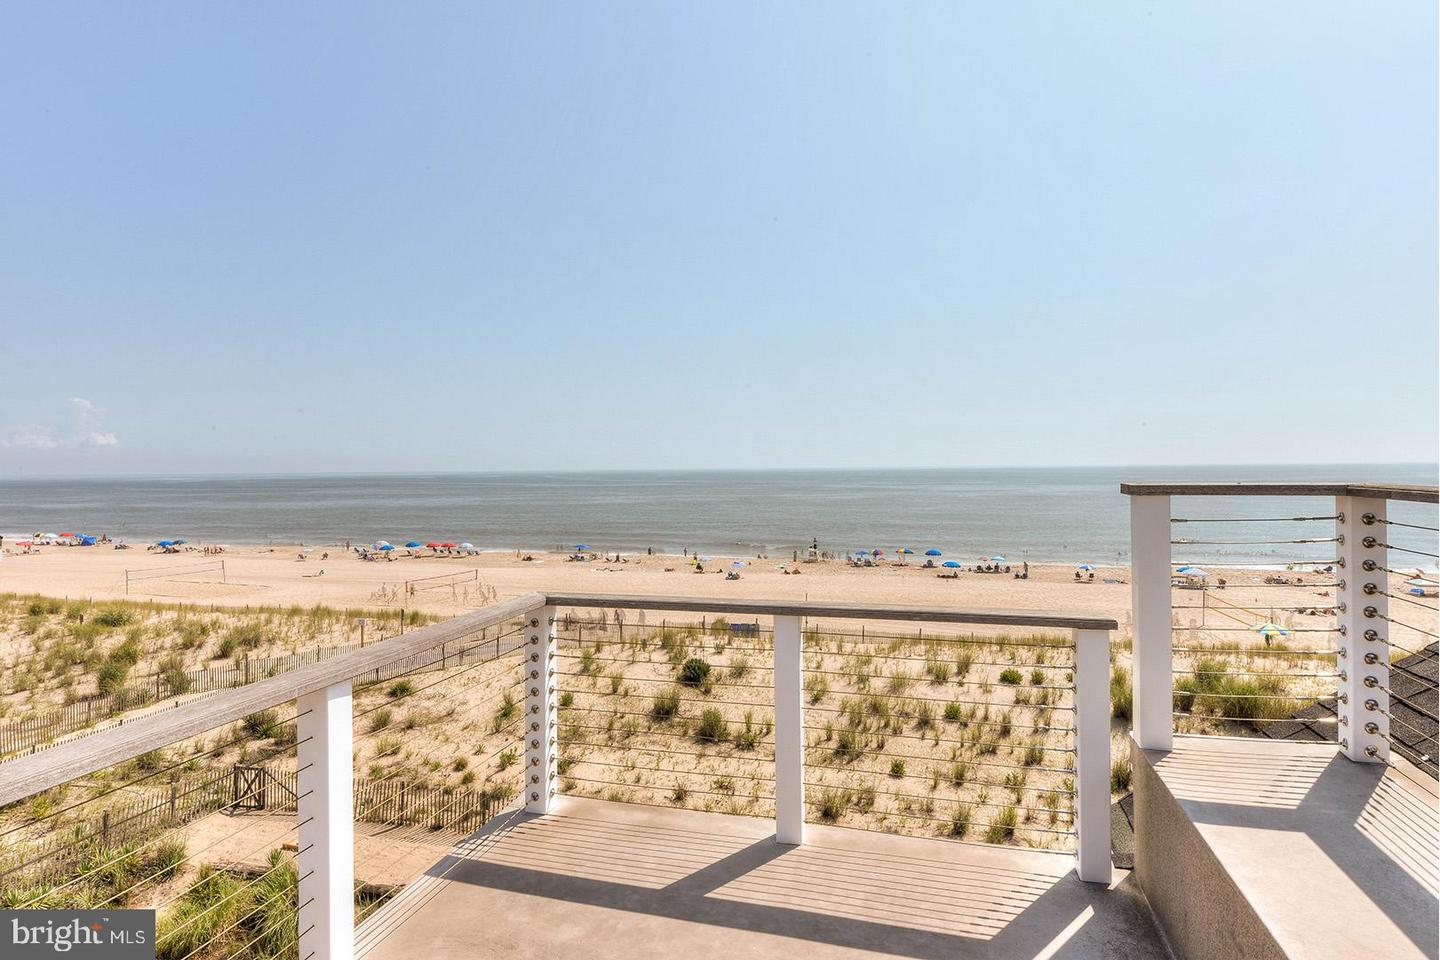 DESU100159-301987211644-2019-09-12-15-11-37 5 Clayton St | Dewey Beach, DE Real Estate For Sale | MLS# Desu100159  - David T. King Realtor